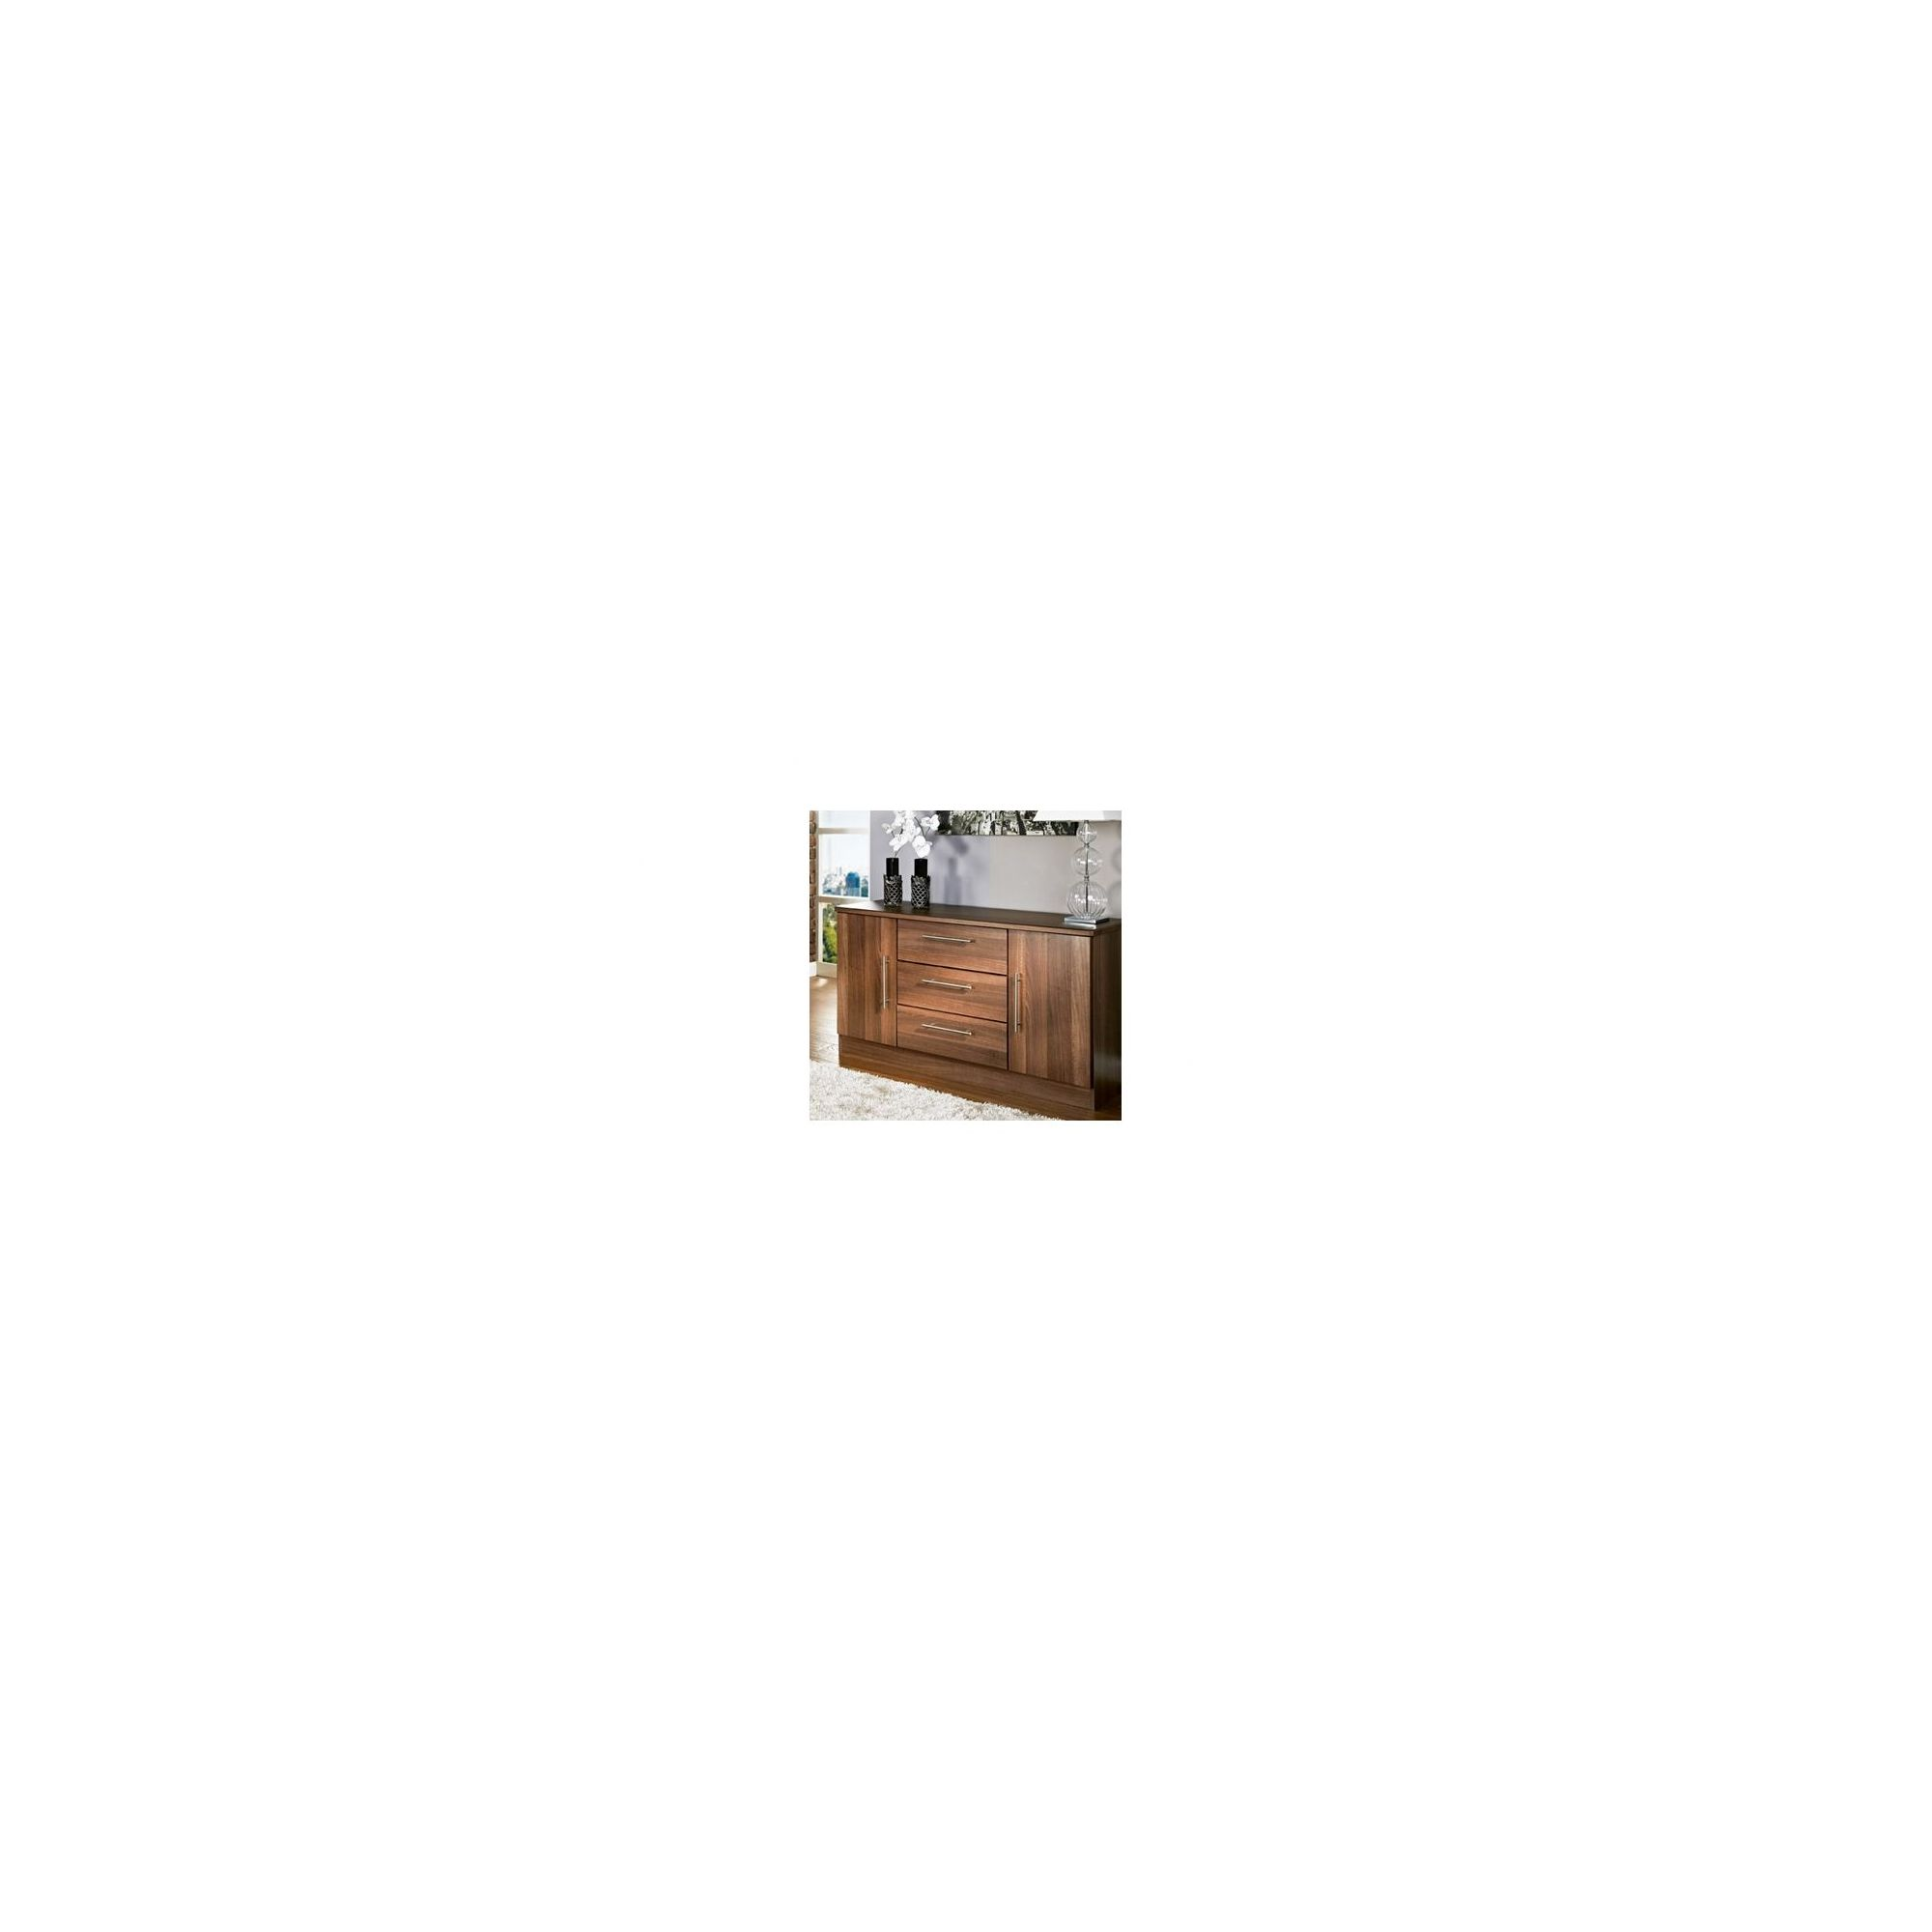 Welcome Furniture Living Room Wide 2 Door / 3 Drawer Unit - Noche at Tesco Direct